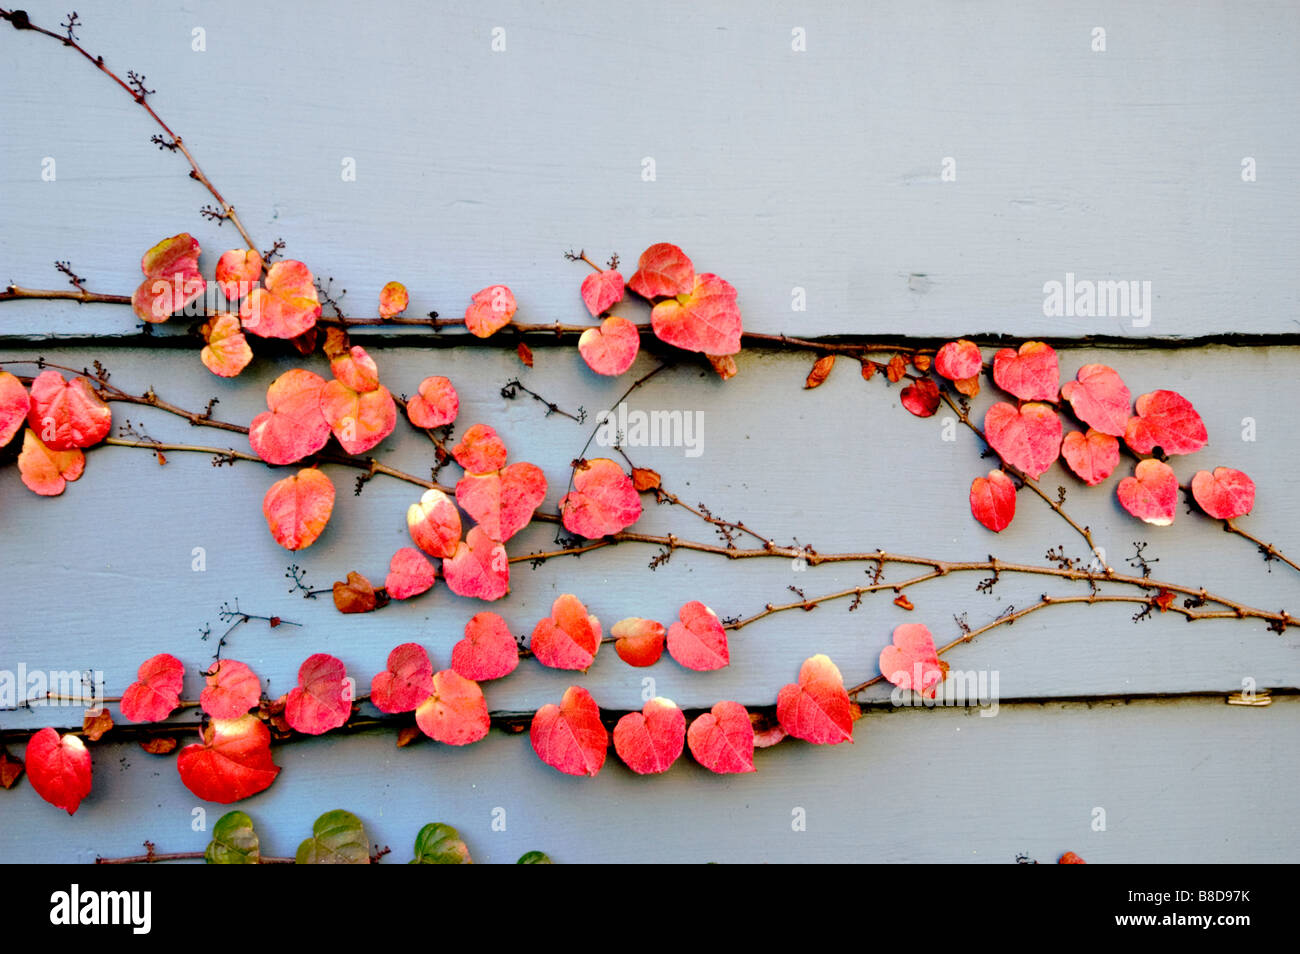 Red autumn vine leaves covering siding wooden wall - Stock Image